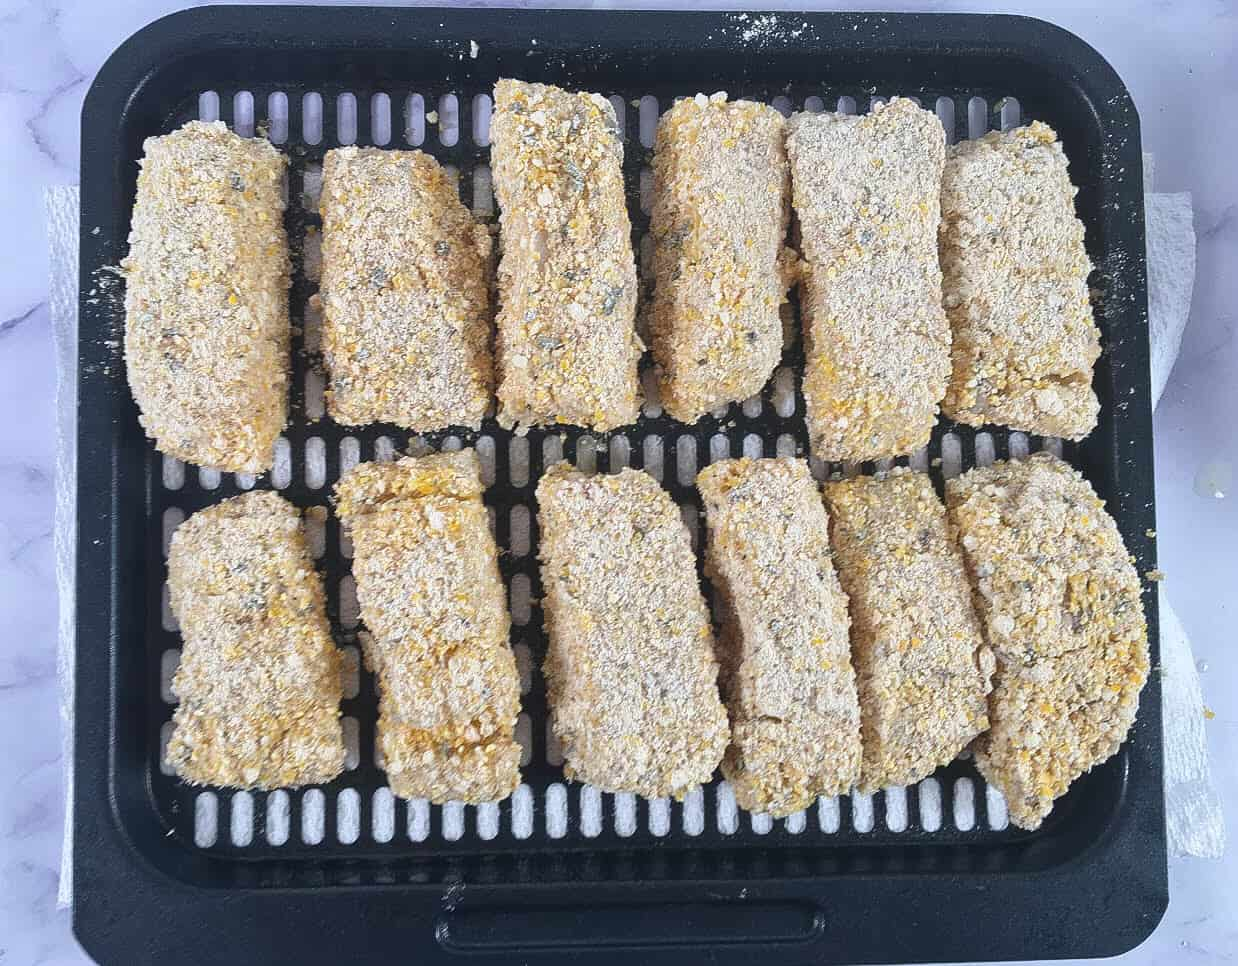 Uncooked breaded fish sticks on an air fryer tray